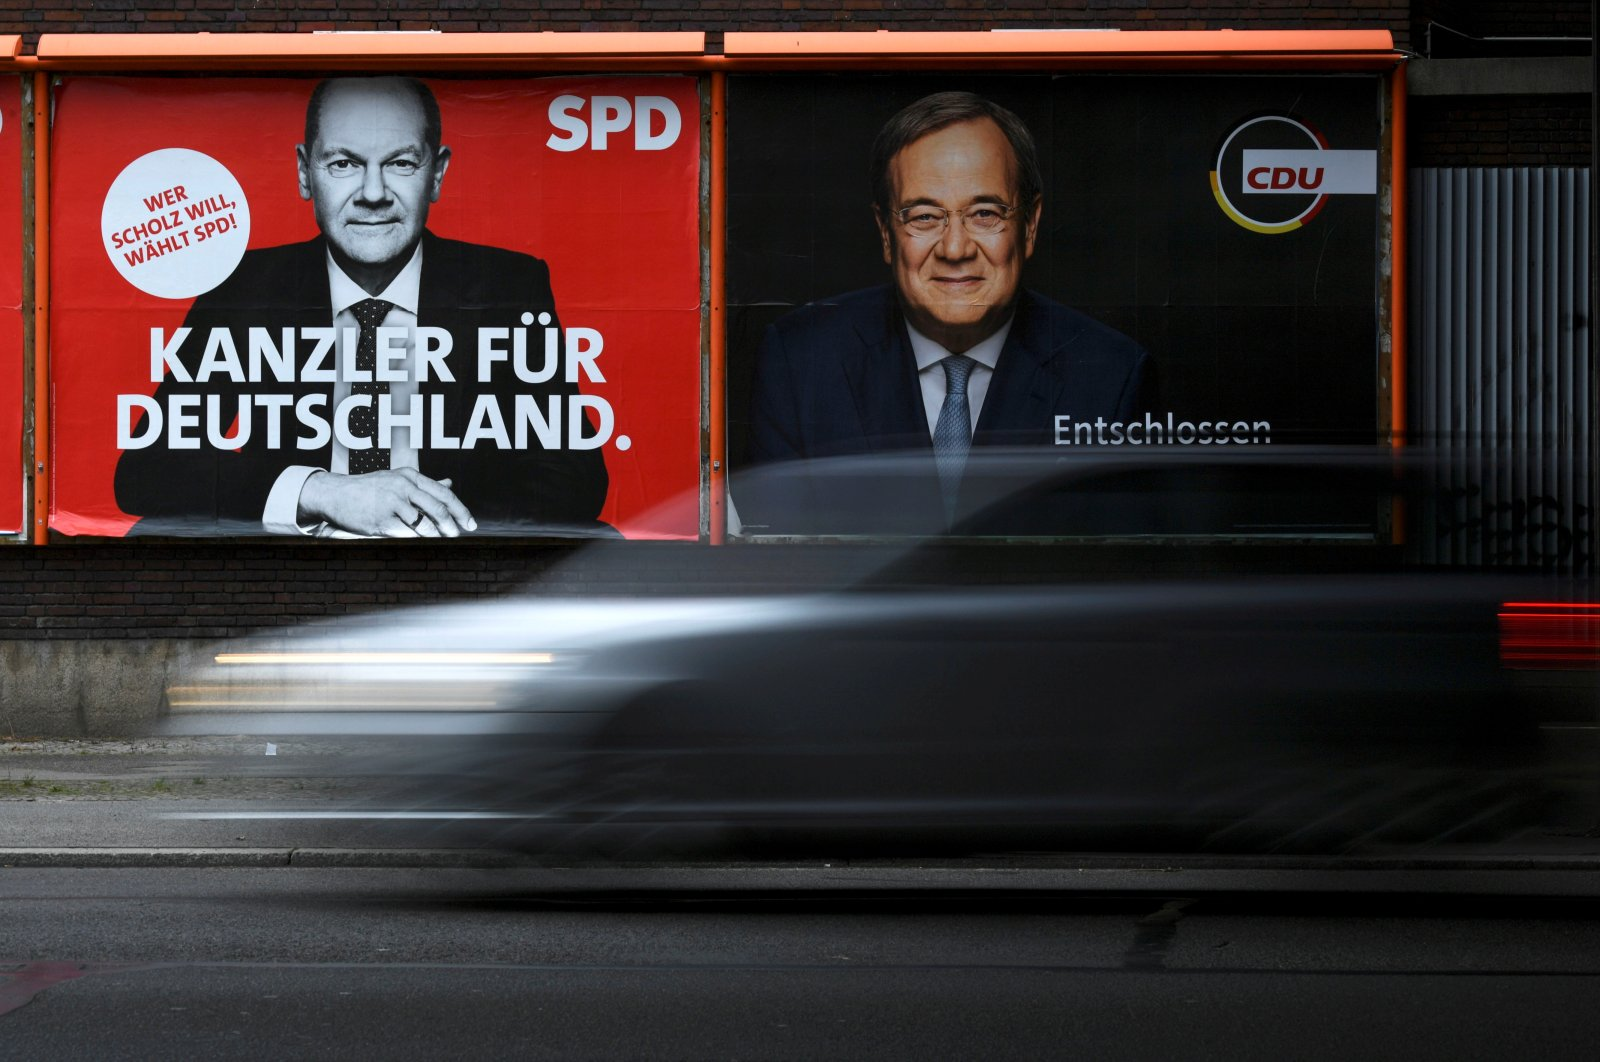 An election campaign billboard, featuring the top candidates for chancellor, Social Democratic Party's (SPD) Olaf Scholz and Christian Democratic Union's (CDU) Armin Laschet, is pictured on a street in Berlin, Germany, Sept. 23, 2021.  (Reuters Photo)